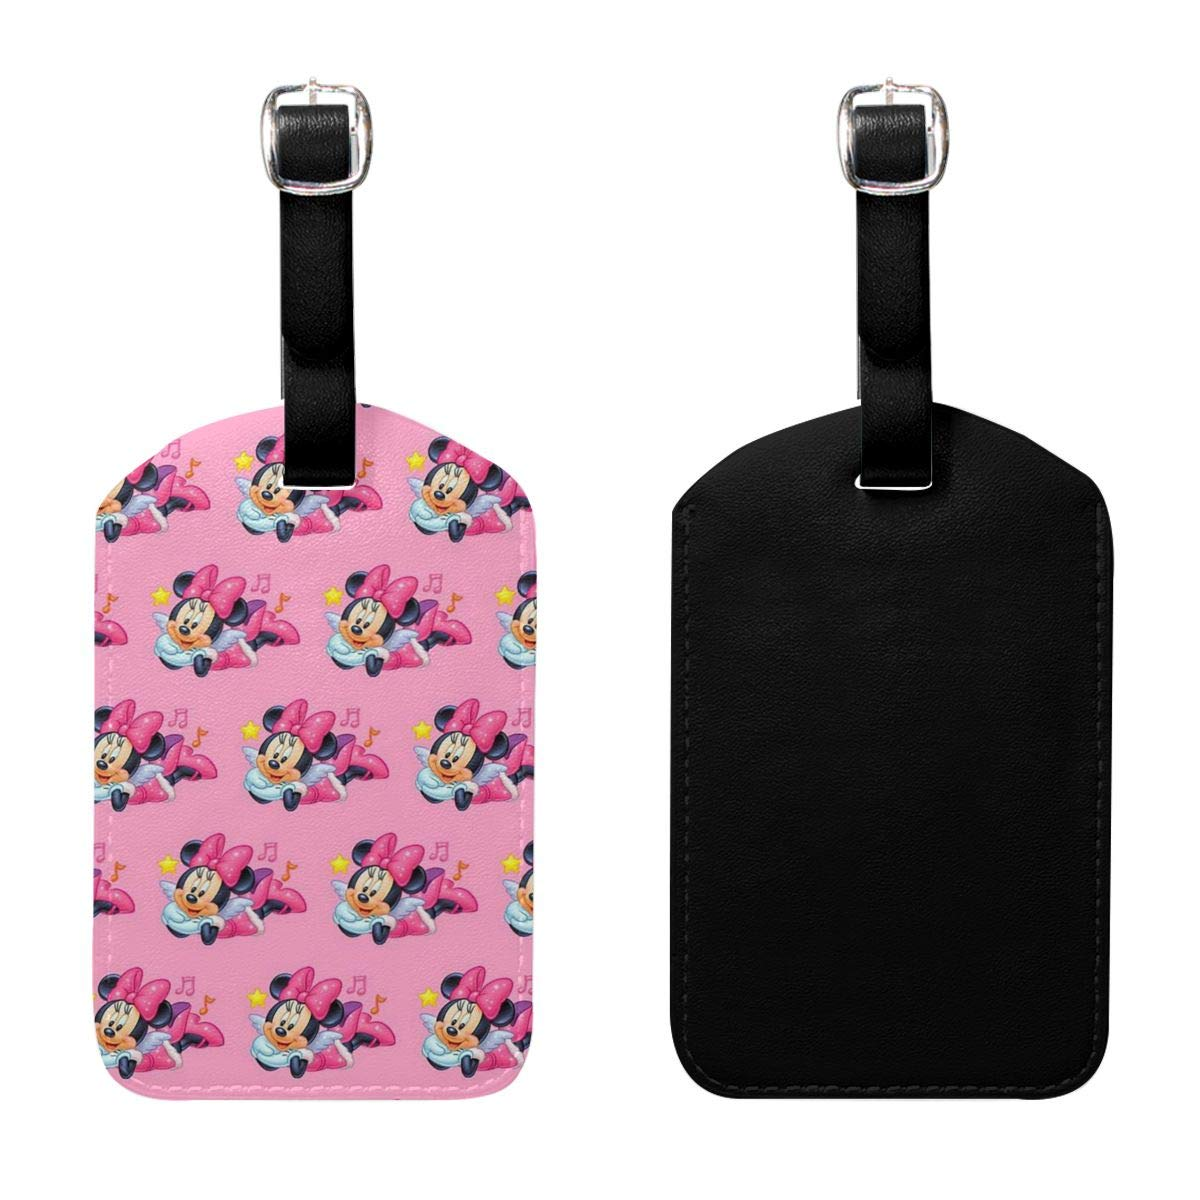 PU Leather Luggage Tags Minnie with Star Suitcase Labels Bag Adjustable Leather Strap Travel Accessories Set of 2